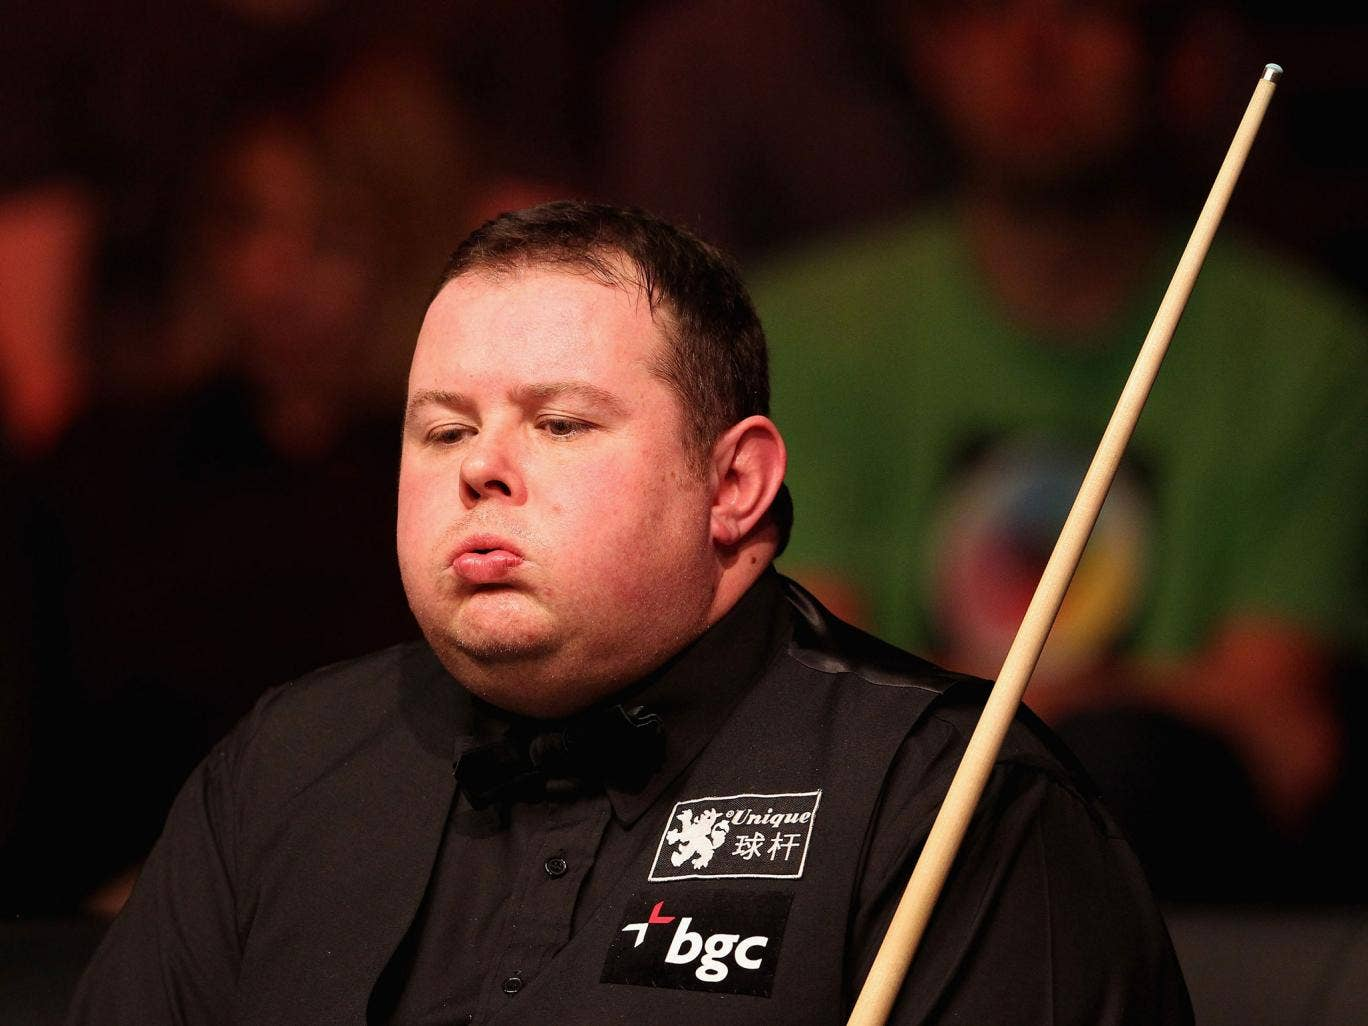 Stephen Lee denies all charges of match fixing and betting breaches